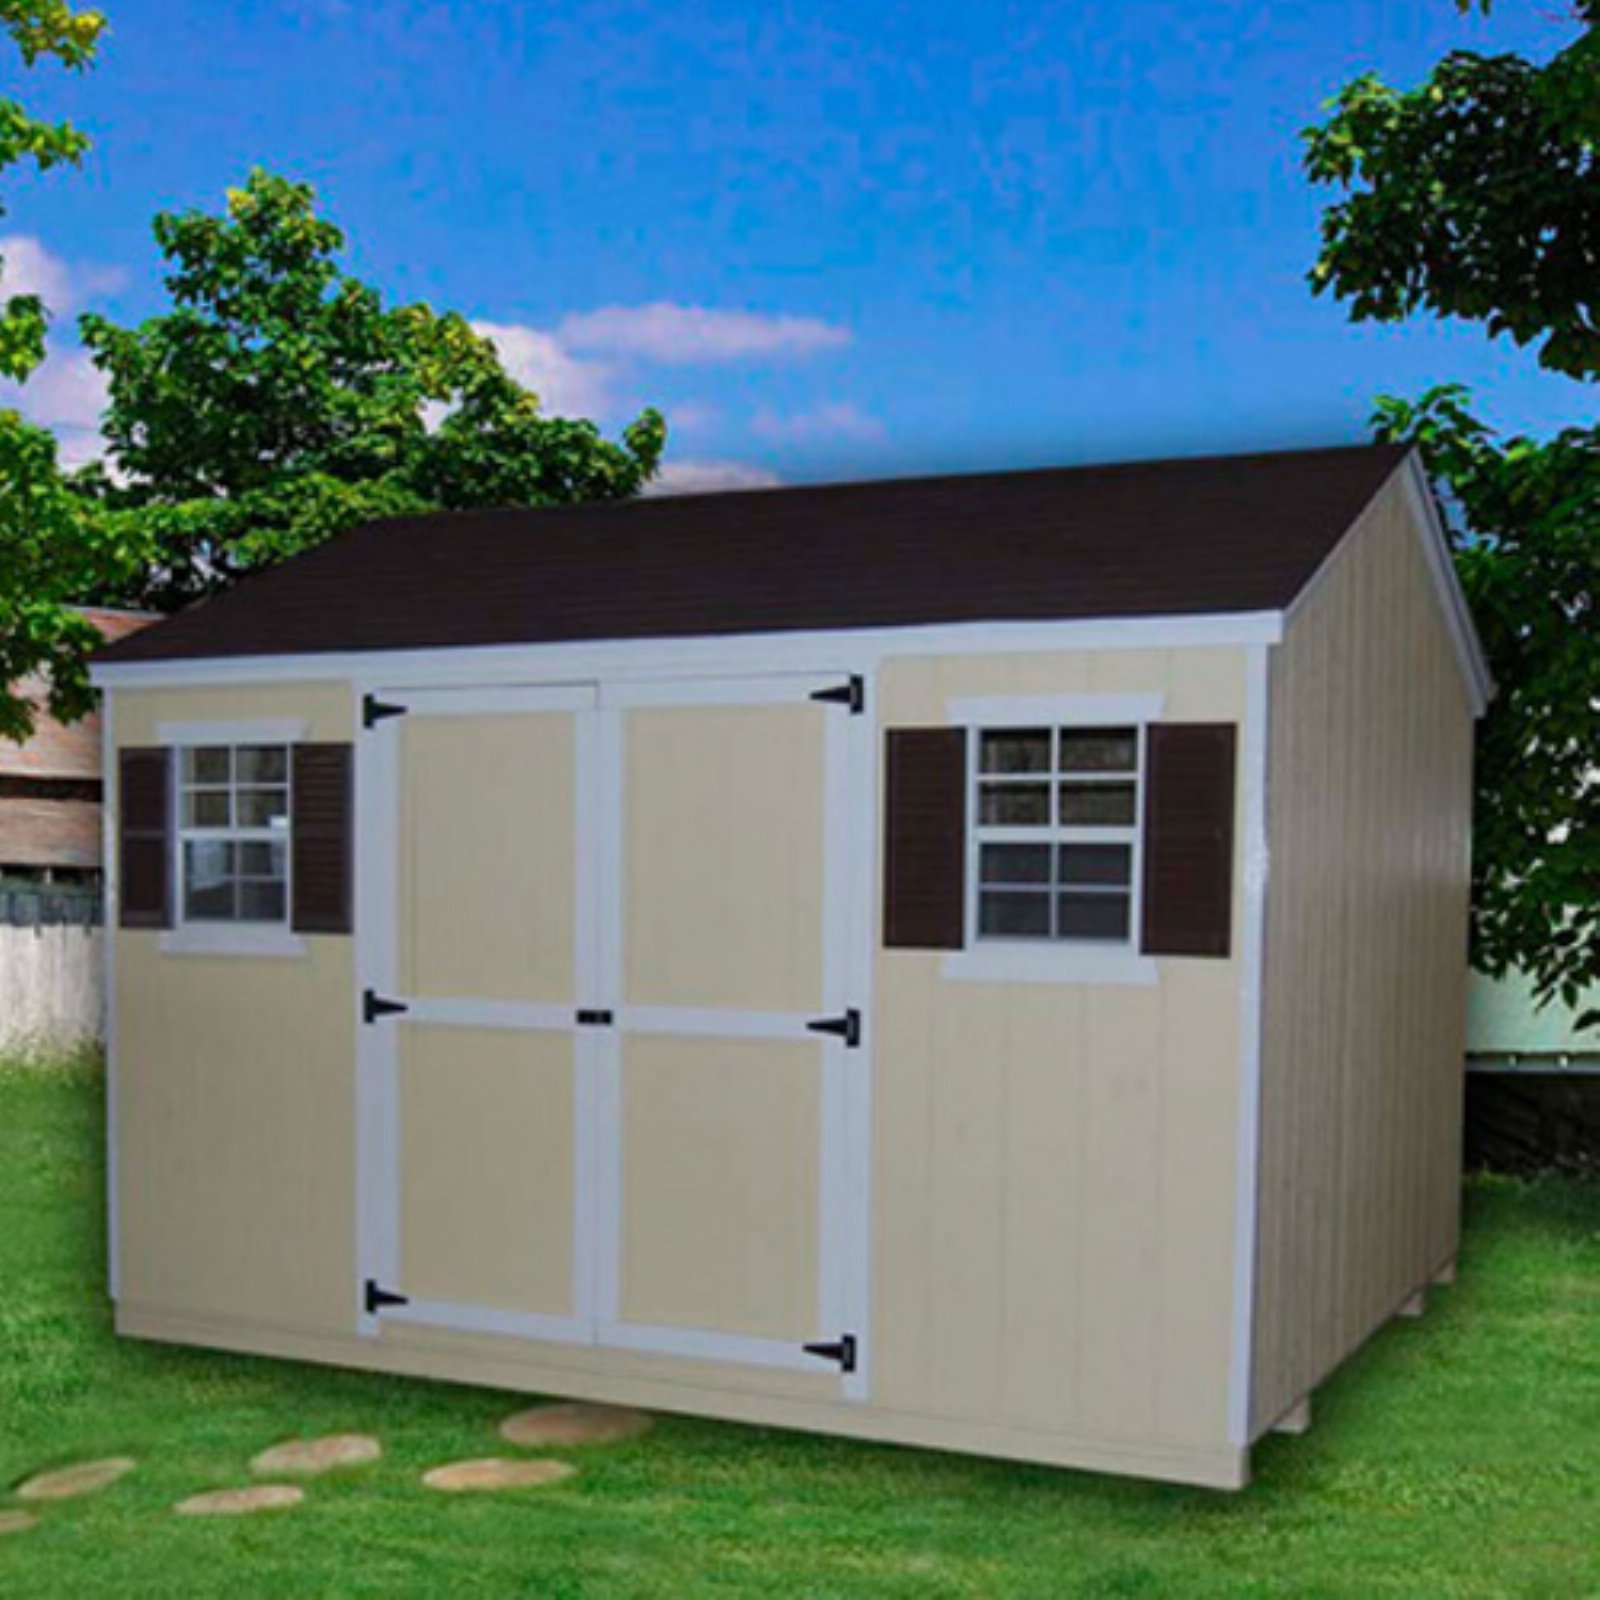 Little Cottage Value Workshop Precut Garden Shed with Optional Floor Kit